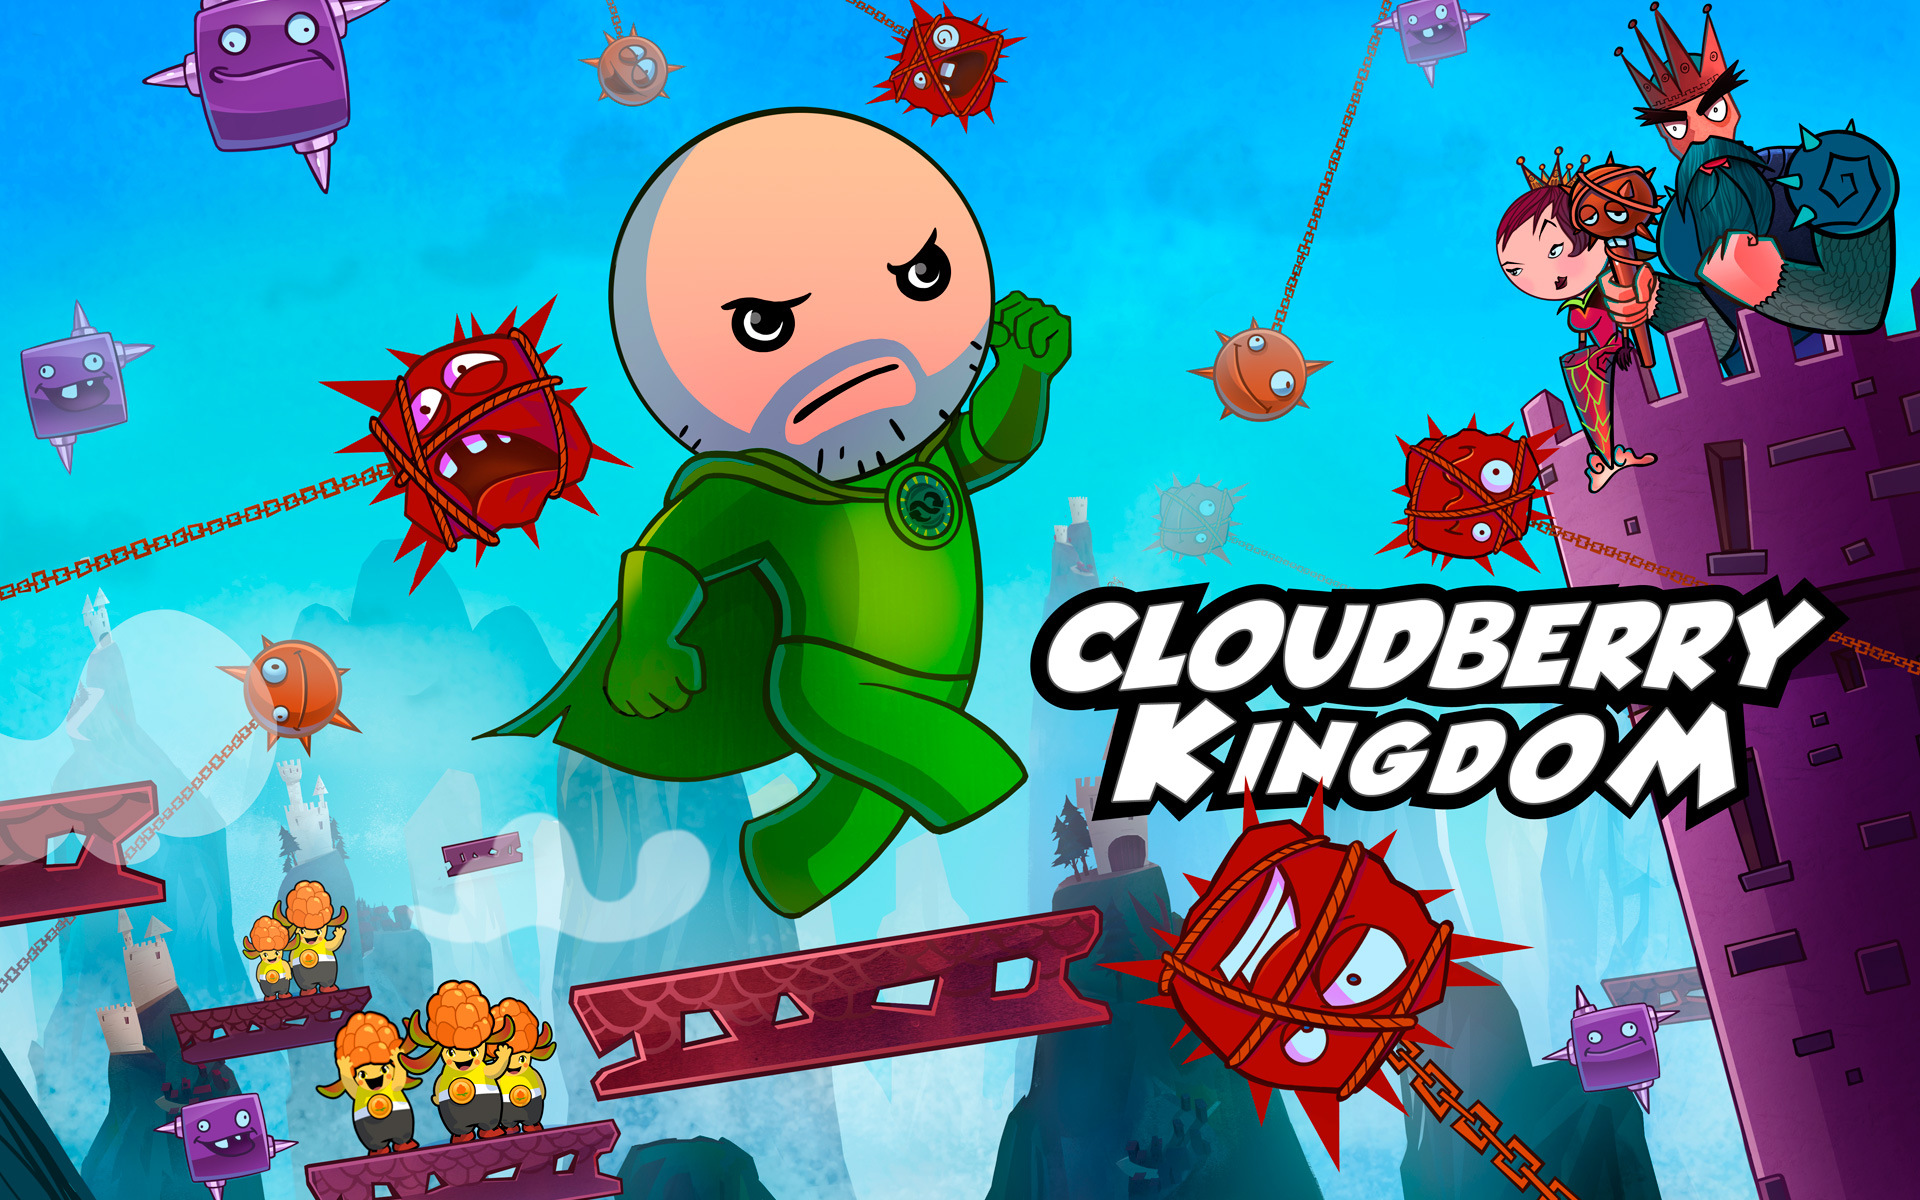 cloudberry-kingdom-01-1920x1200.jpg